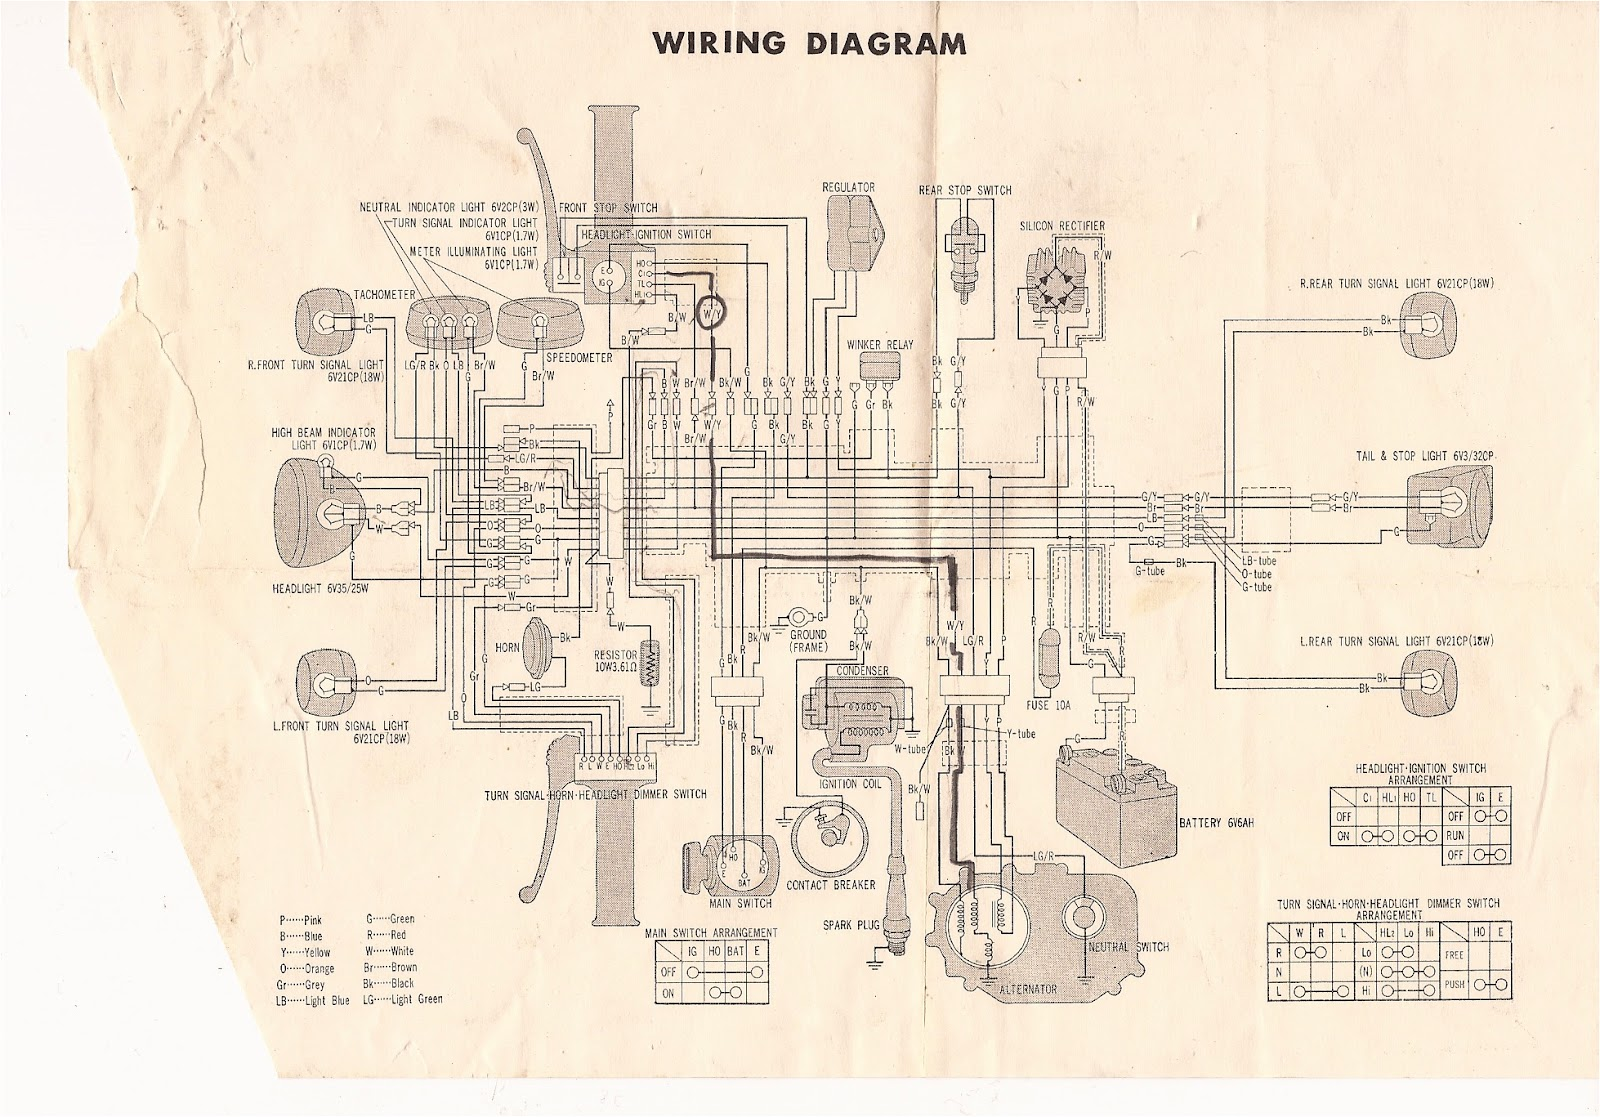 XL350+Wiring+diagram r4l may 2012 yamaha sr250 wiring diagram at gsmportal.co